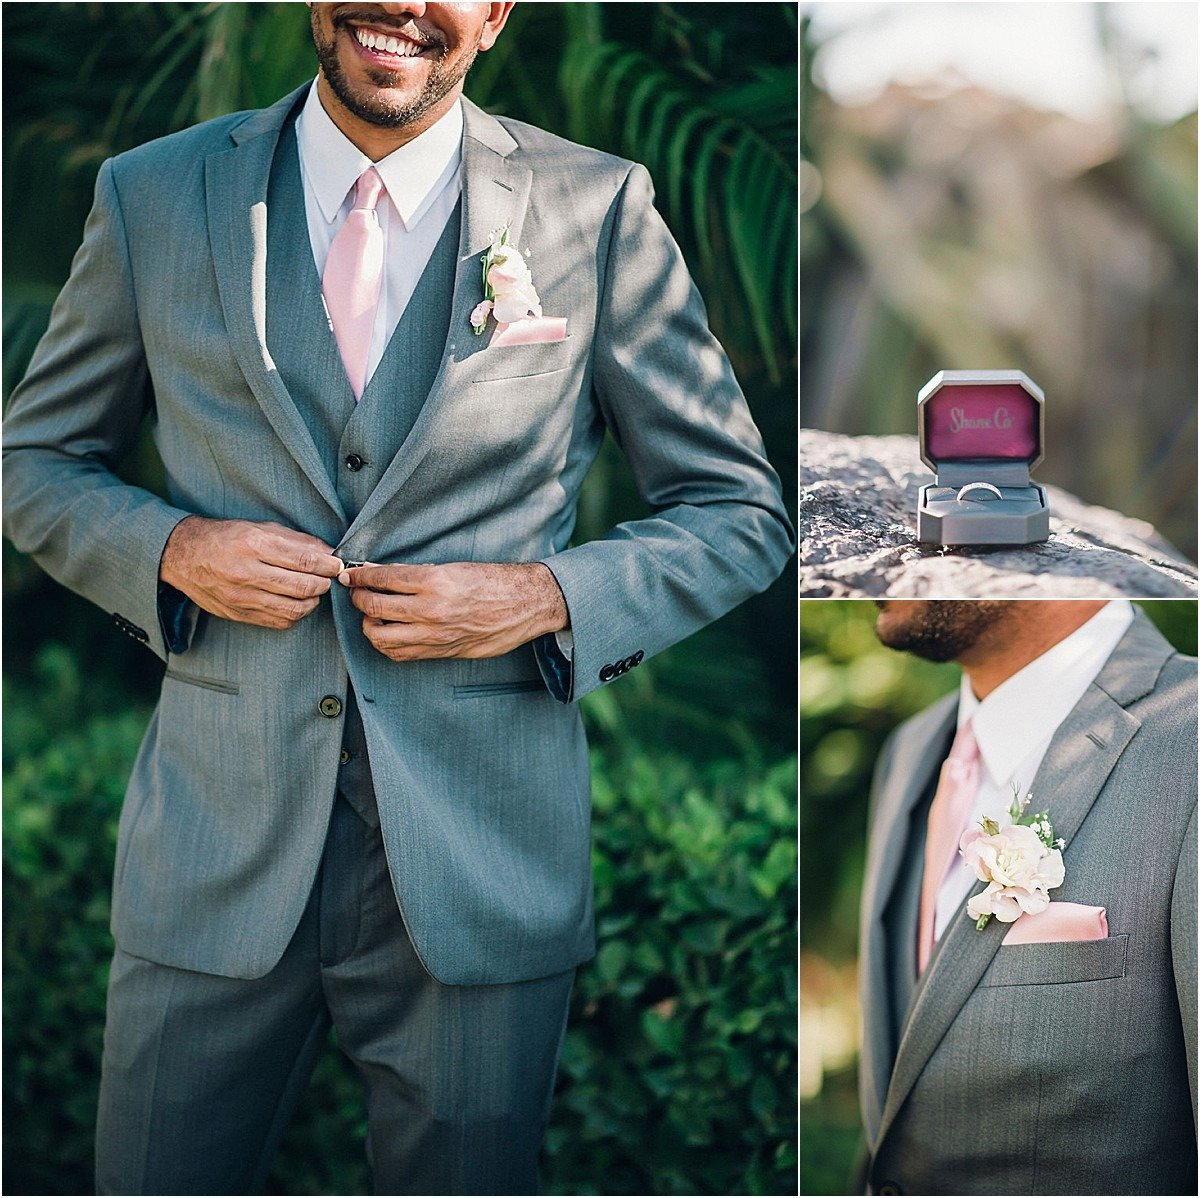 grooms grey suit with light pin tie